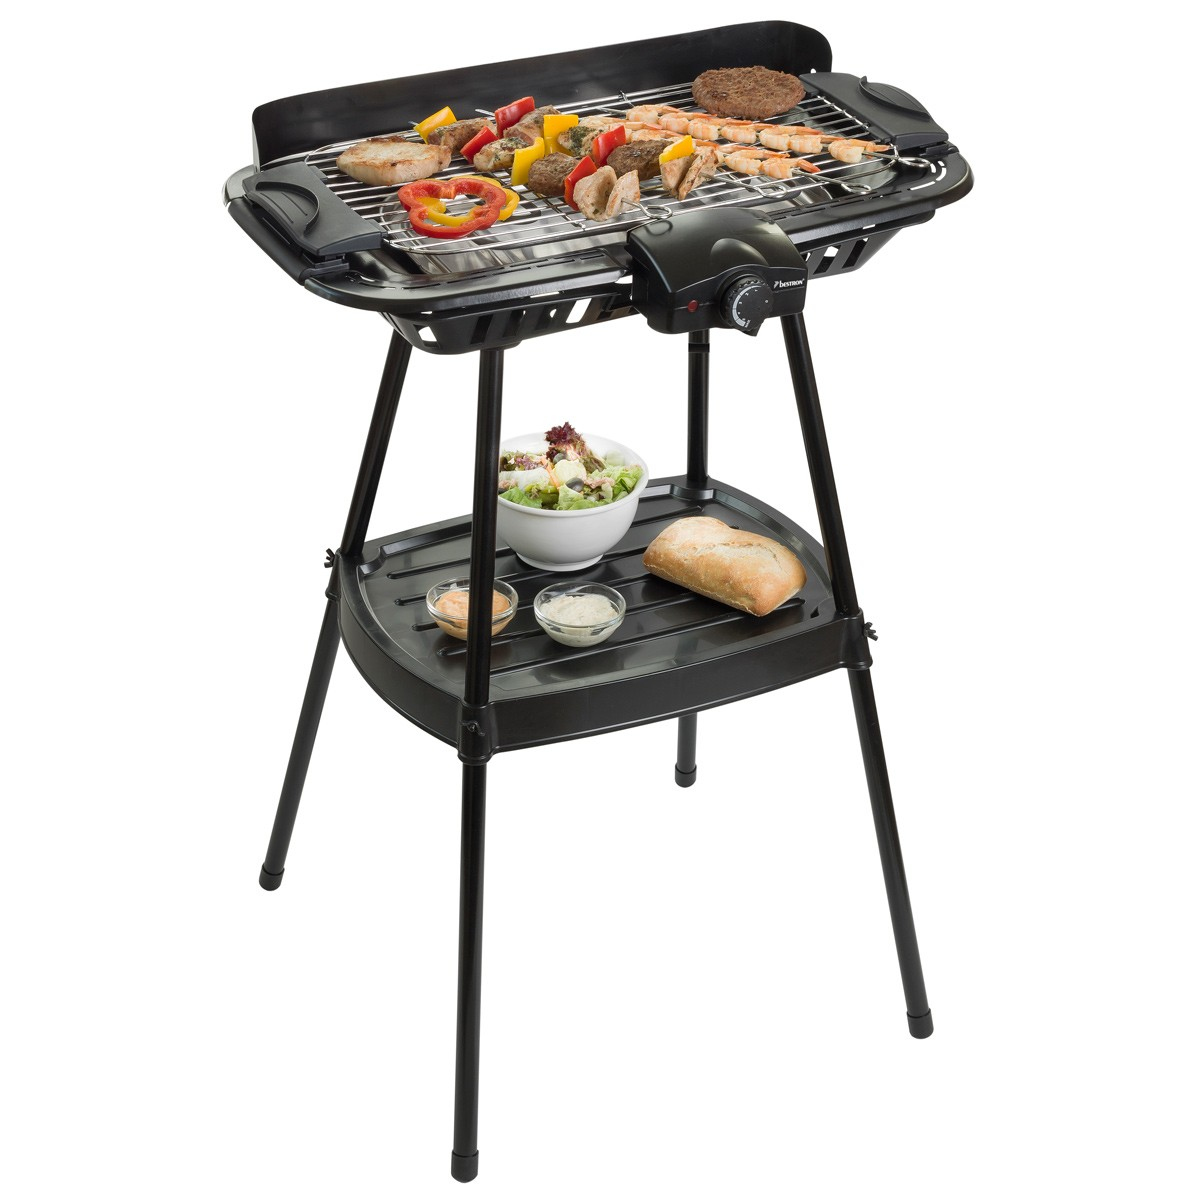 Image of Barbecue AJA902S